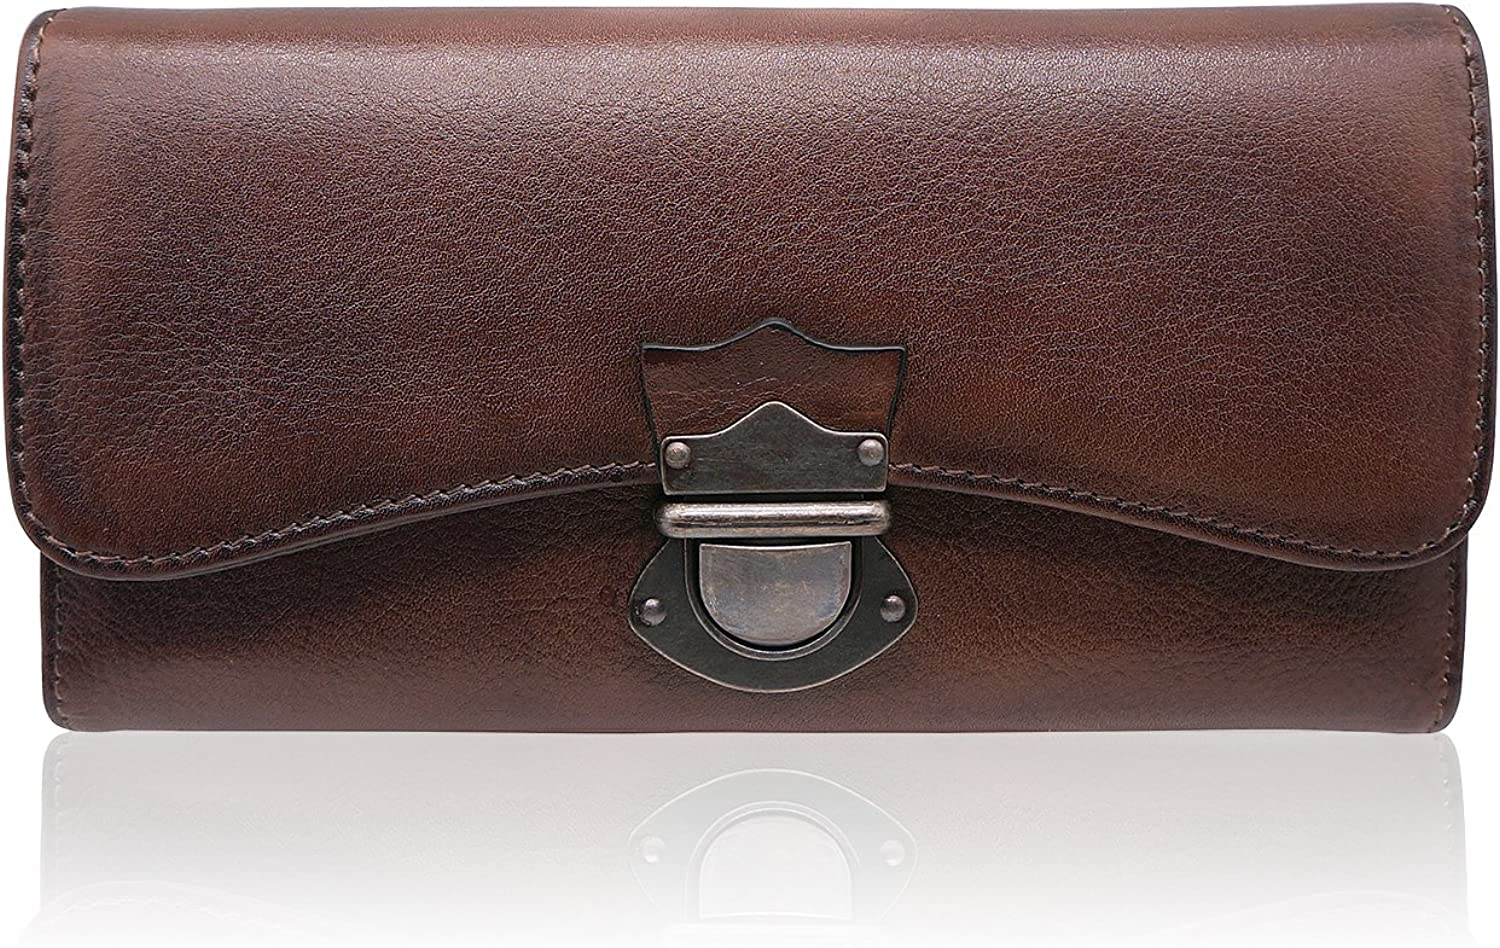 Women's Wallet Large Capacity Ladies Real Leather Clutch